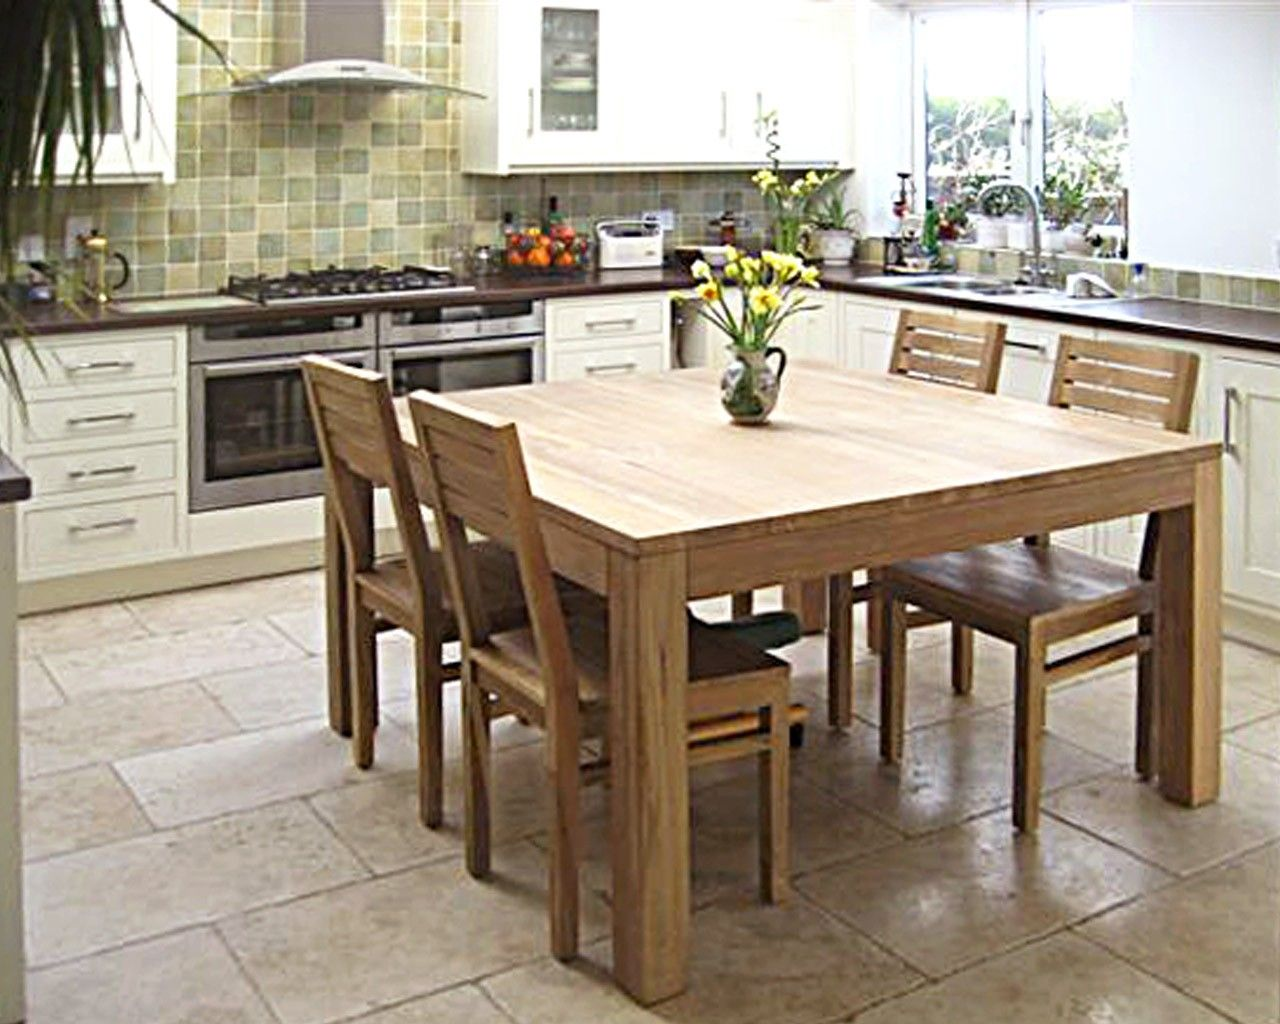 dining table ideas kitchen table bakers Classic Dining Furniture Small Kitchen Design Square Dining Tables in 14 Top Rated dining room kitchen tables